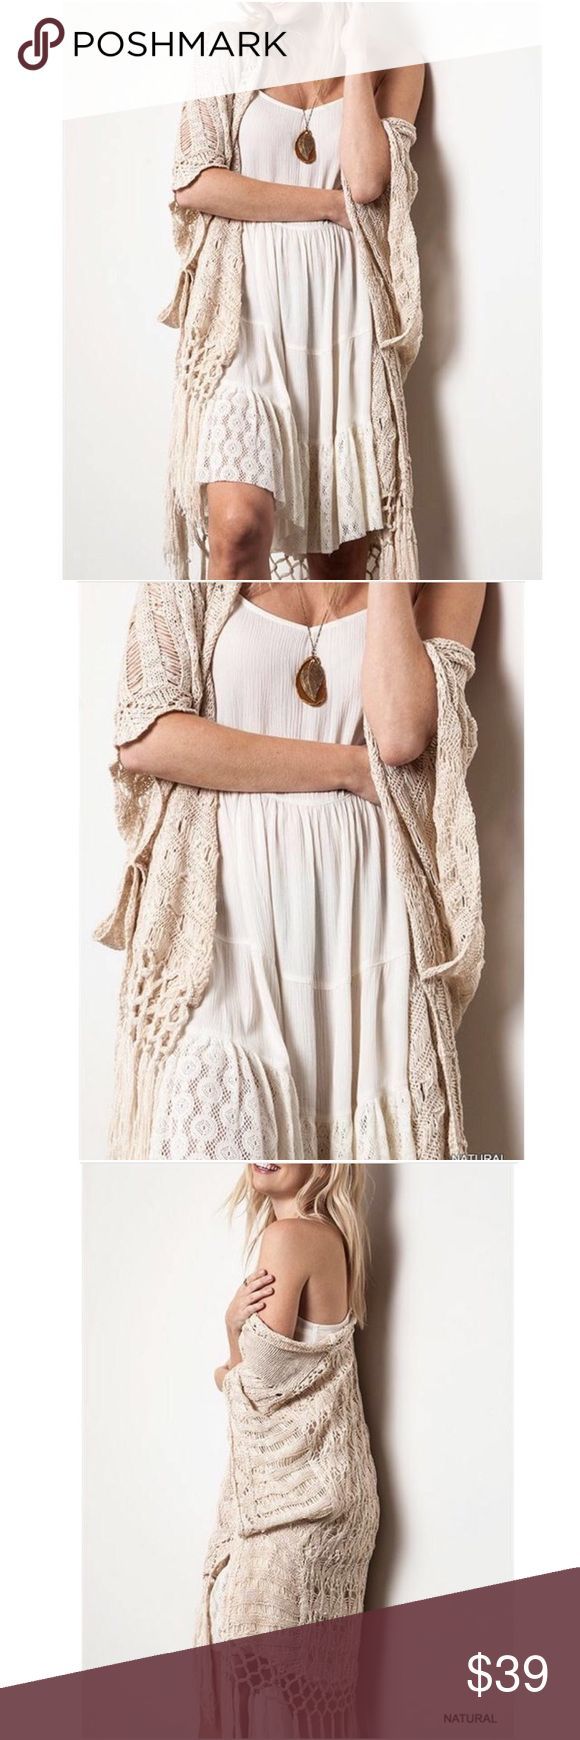 New Kori Cream Crochet Boho Draped Fringe Cardigan This Kori Cardigan is made of a super soft knit, cotton blend fabric. Size S/M - Bust is 54 inches unstretched. Size M/L - Bust is 58 inches unstretched. Total length is 43 inches. 🚨Price is Firm🚨 Kori Sweaters Cardigans